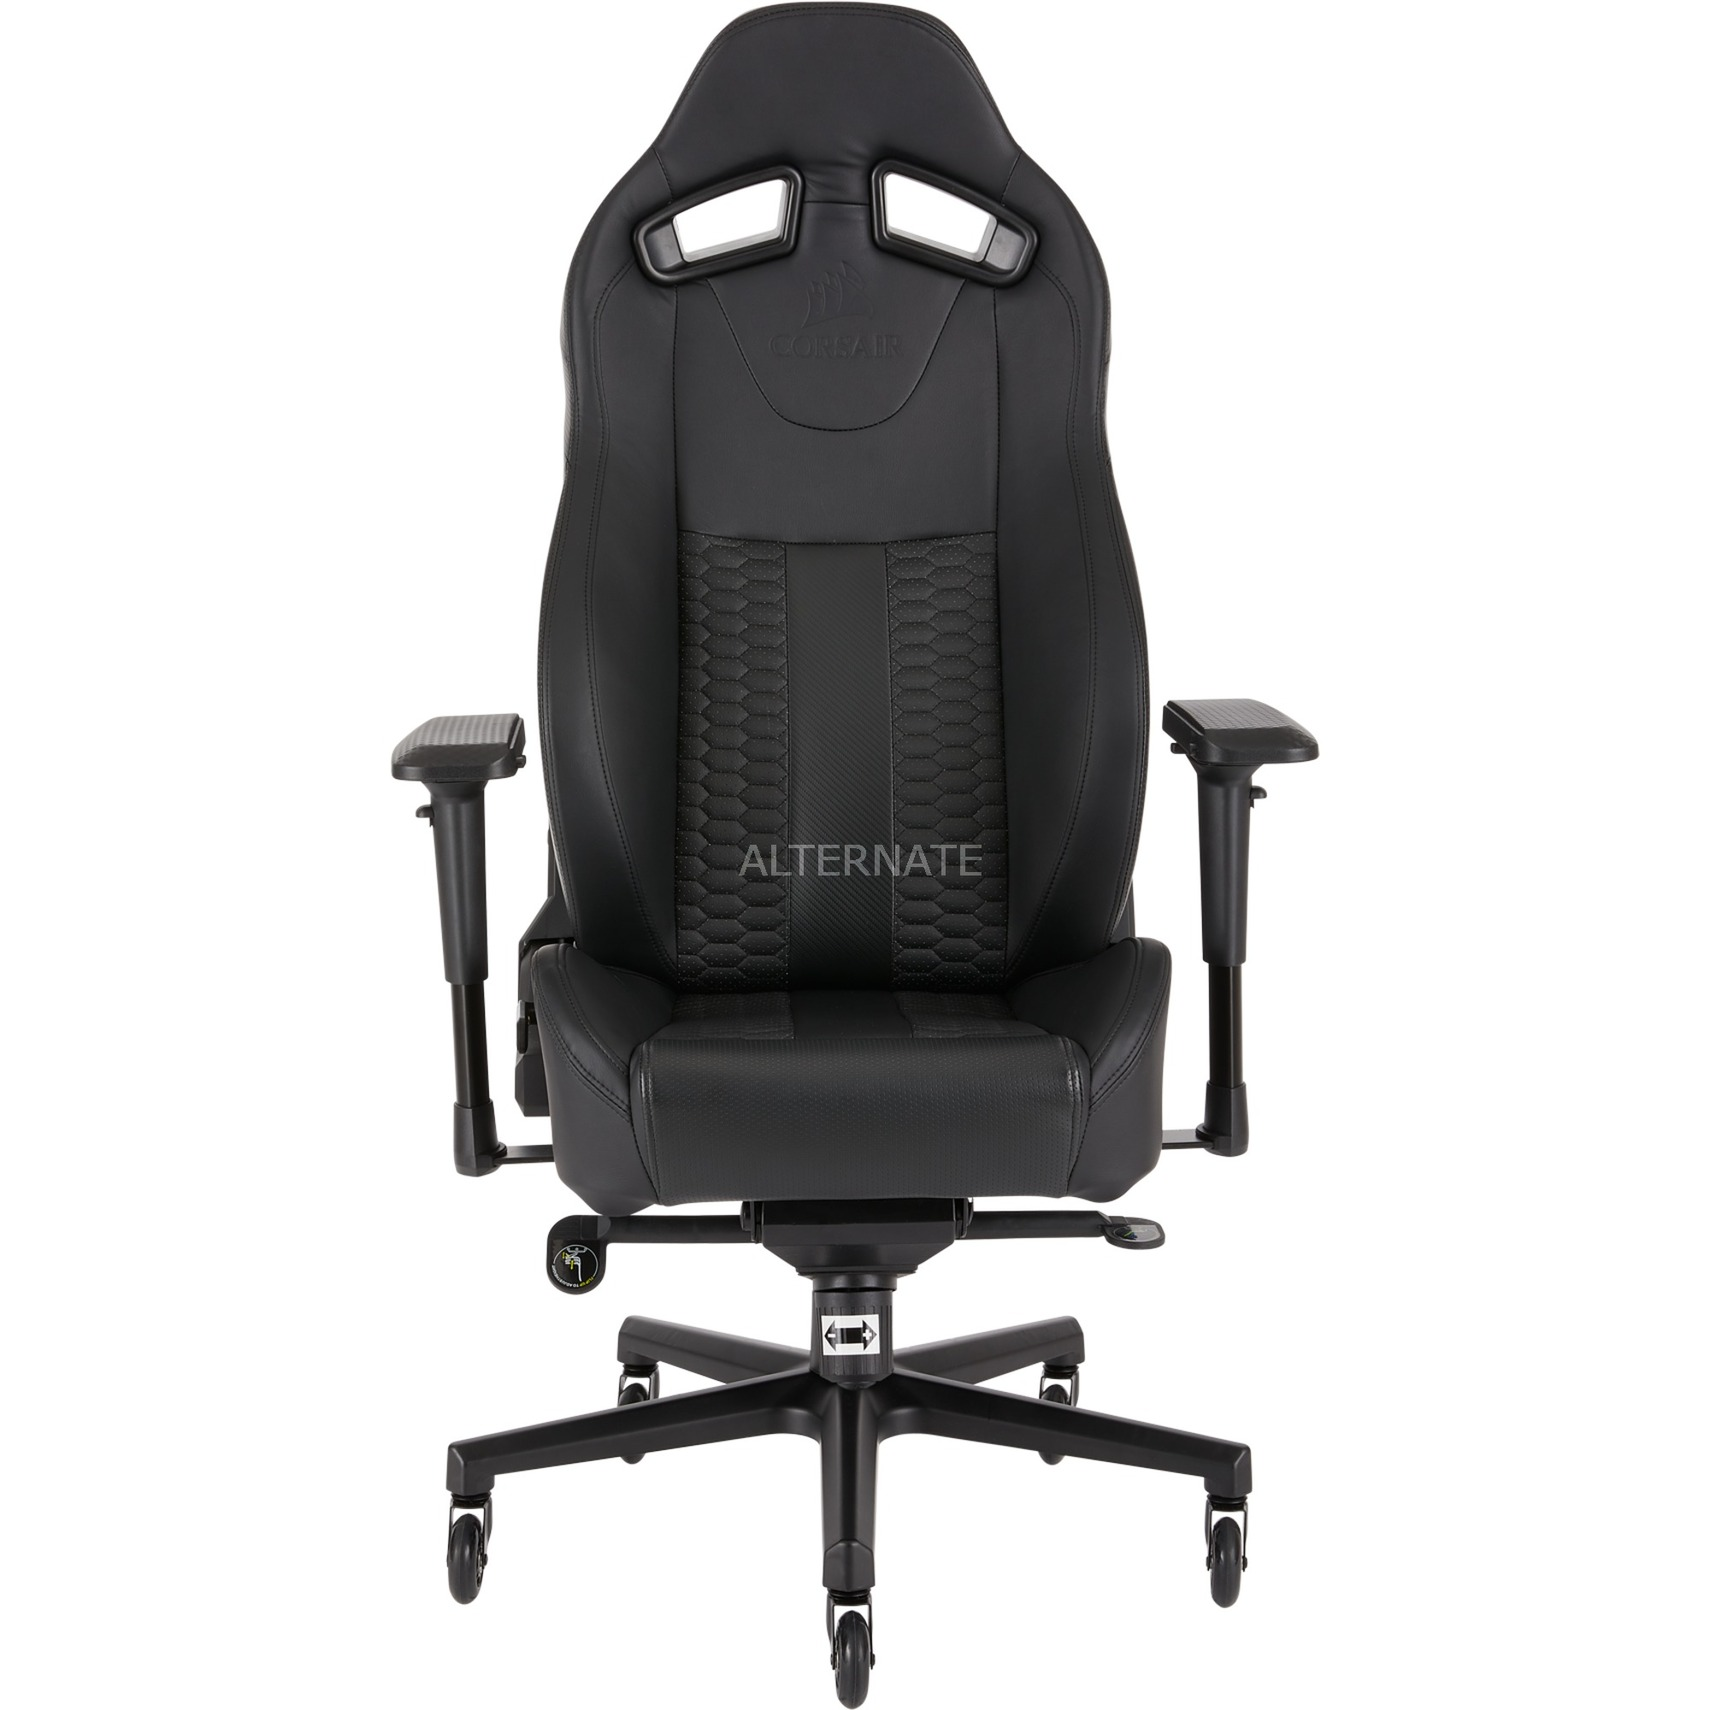 Warrior Warrior T2 ChairStuhlschwarz Gaming T2 Road Road Road Gaming Warrior T2 ChairStuhlschwarz SVpqzUM